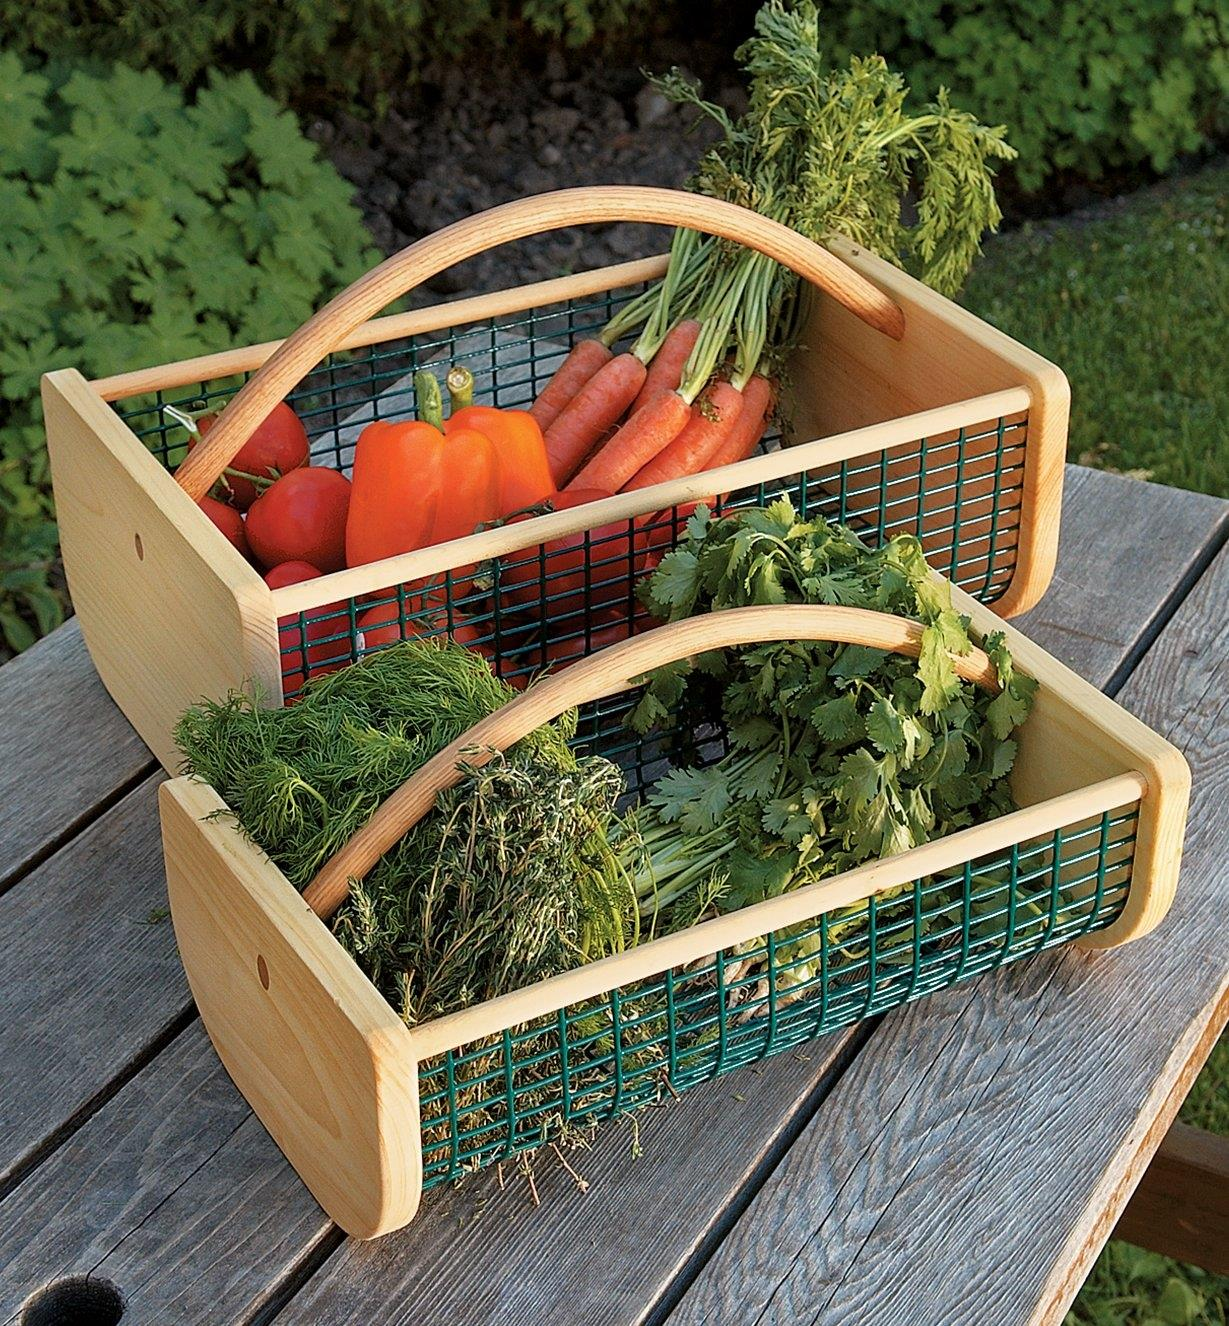 Large and medium Maine Garden Hods filled with fresh-picked vegetables, sitting on a picnic table